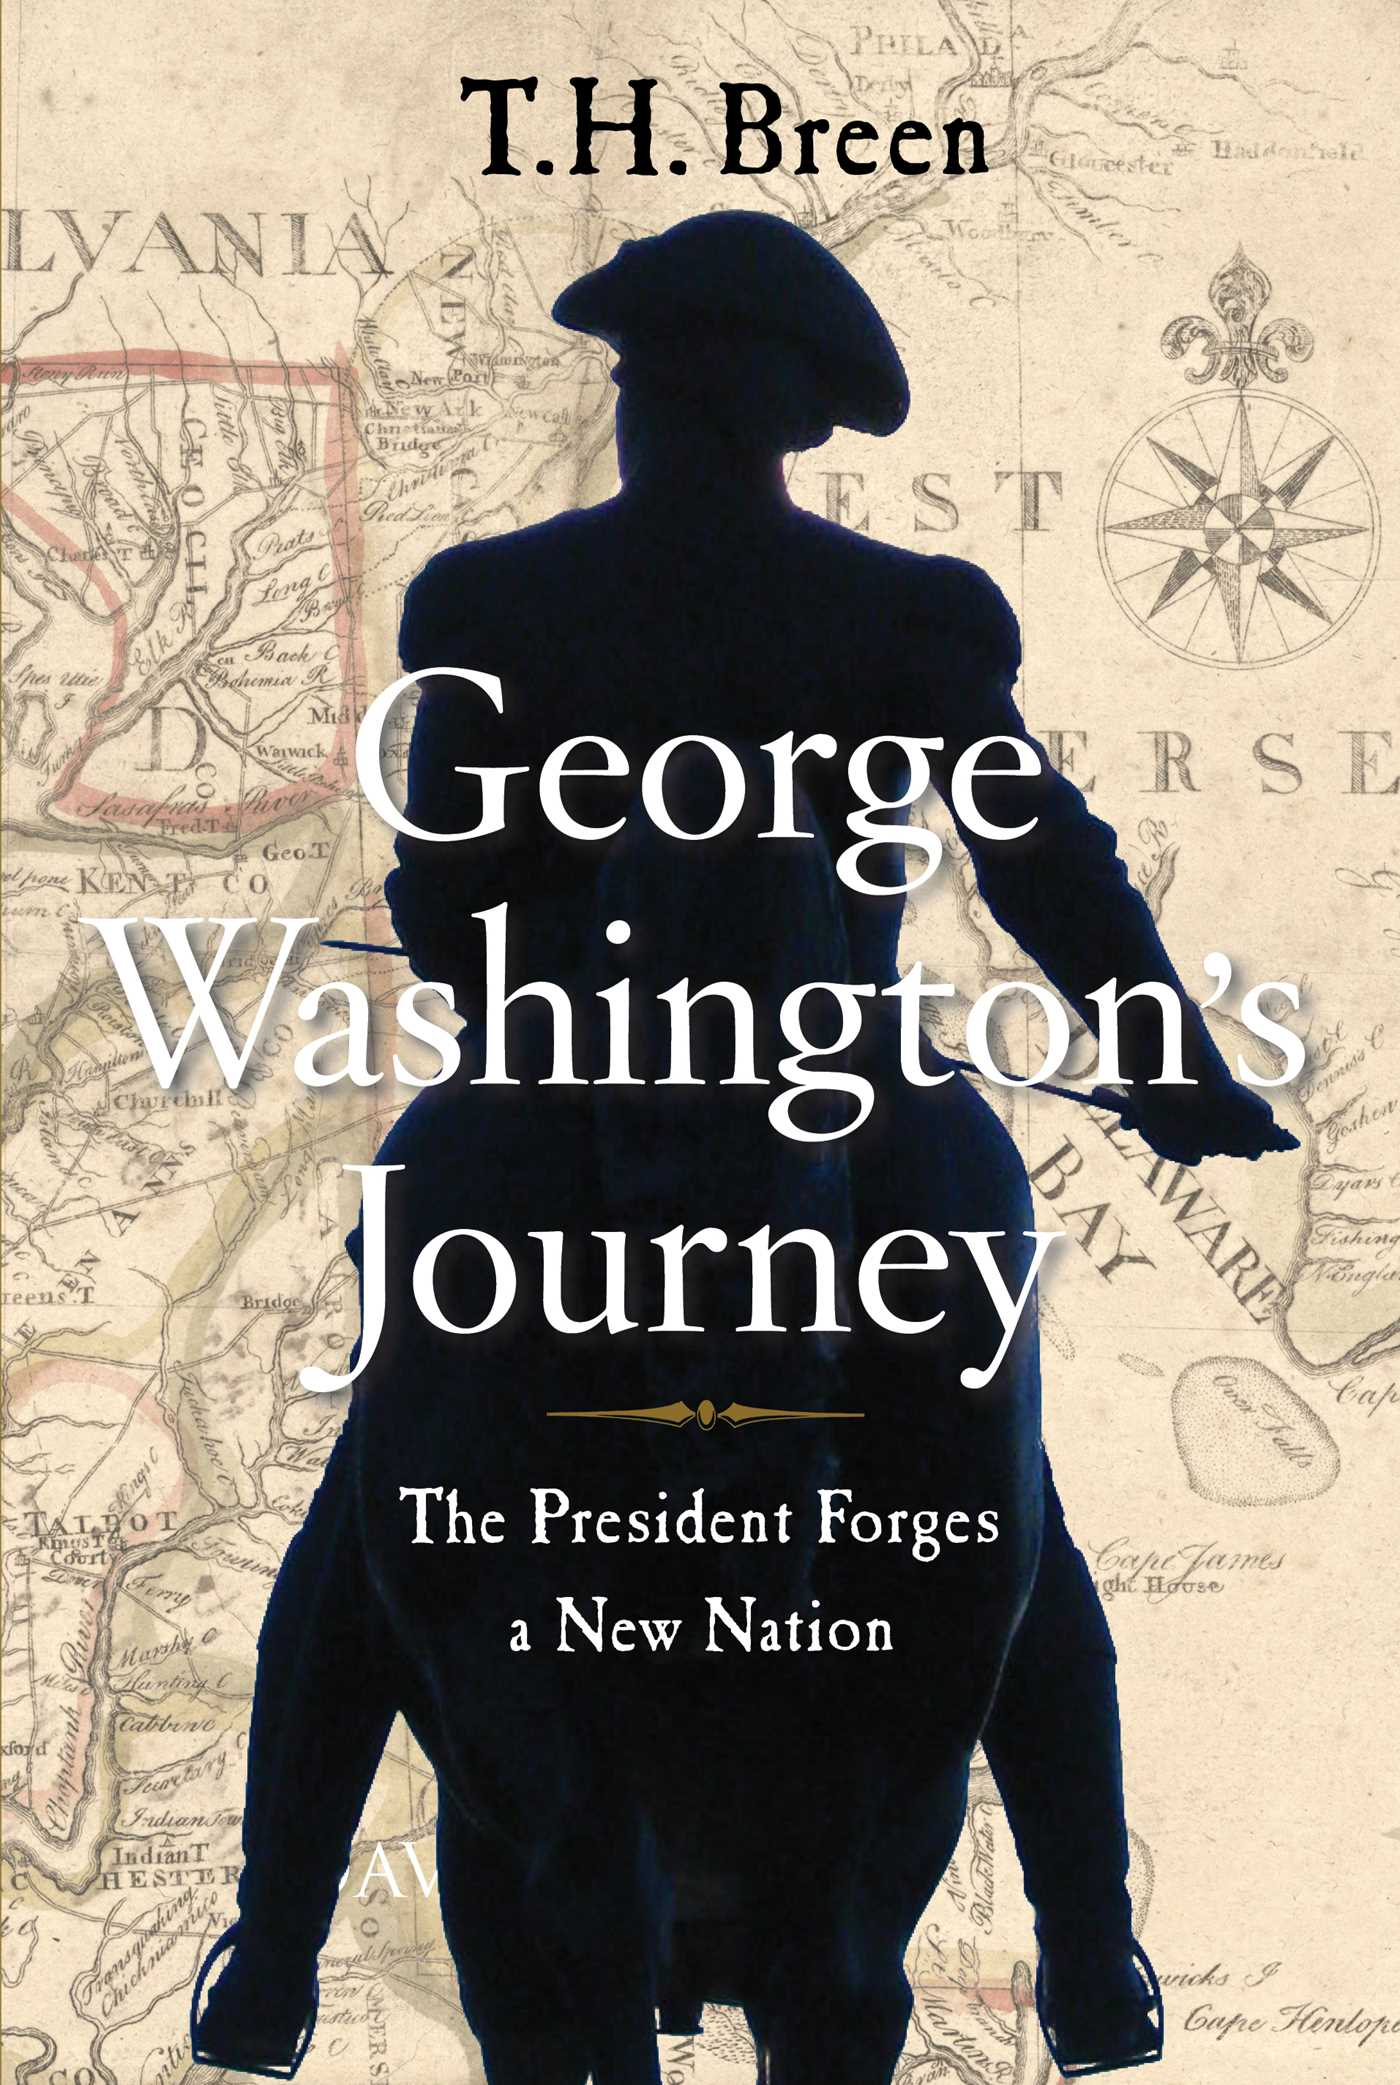 May 20 - George Washington's Journey